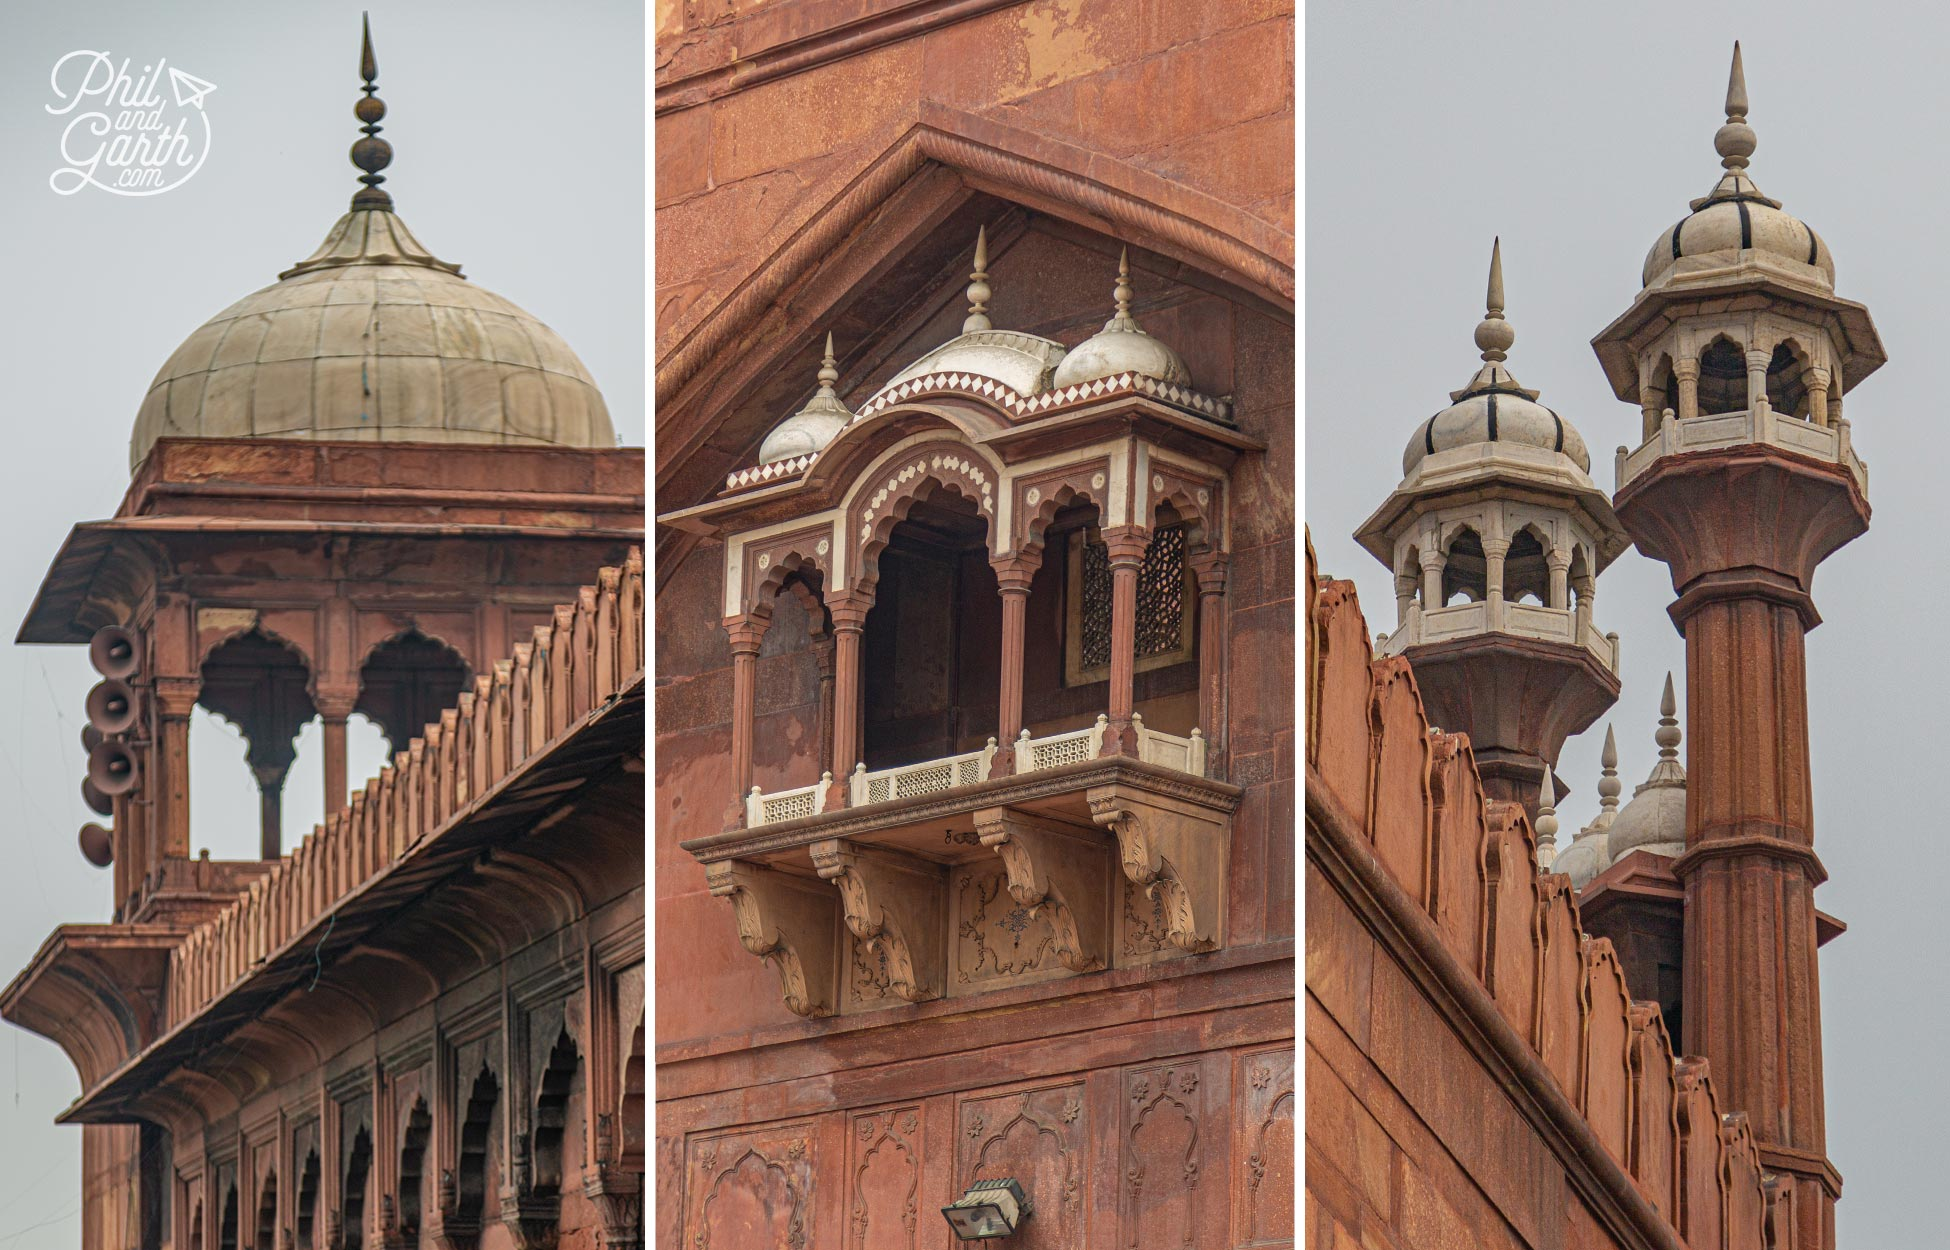 Jama Masjid is famous because it holds a pair of sandals, some hair and a footprint of the Prophet Muhammad